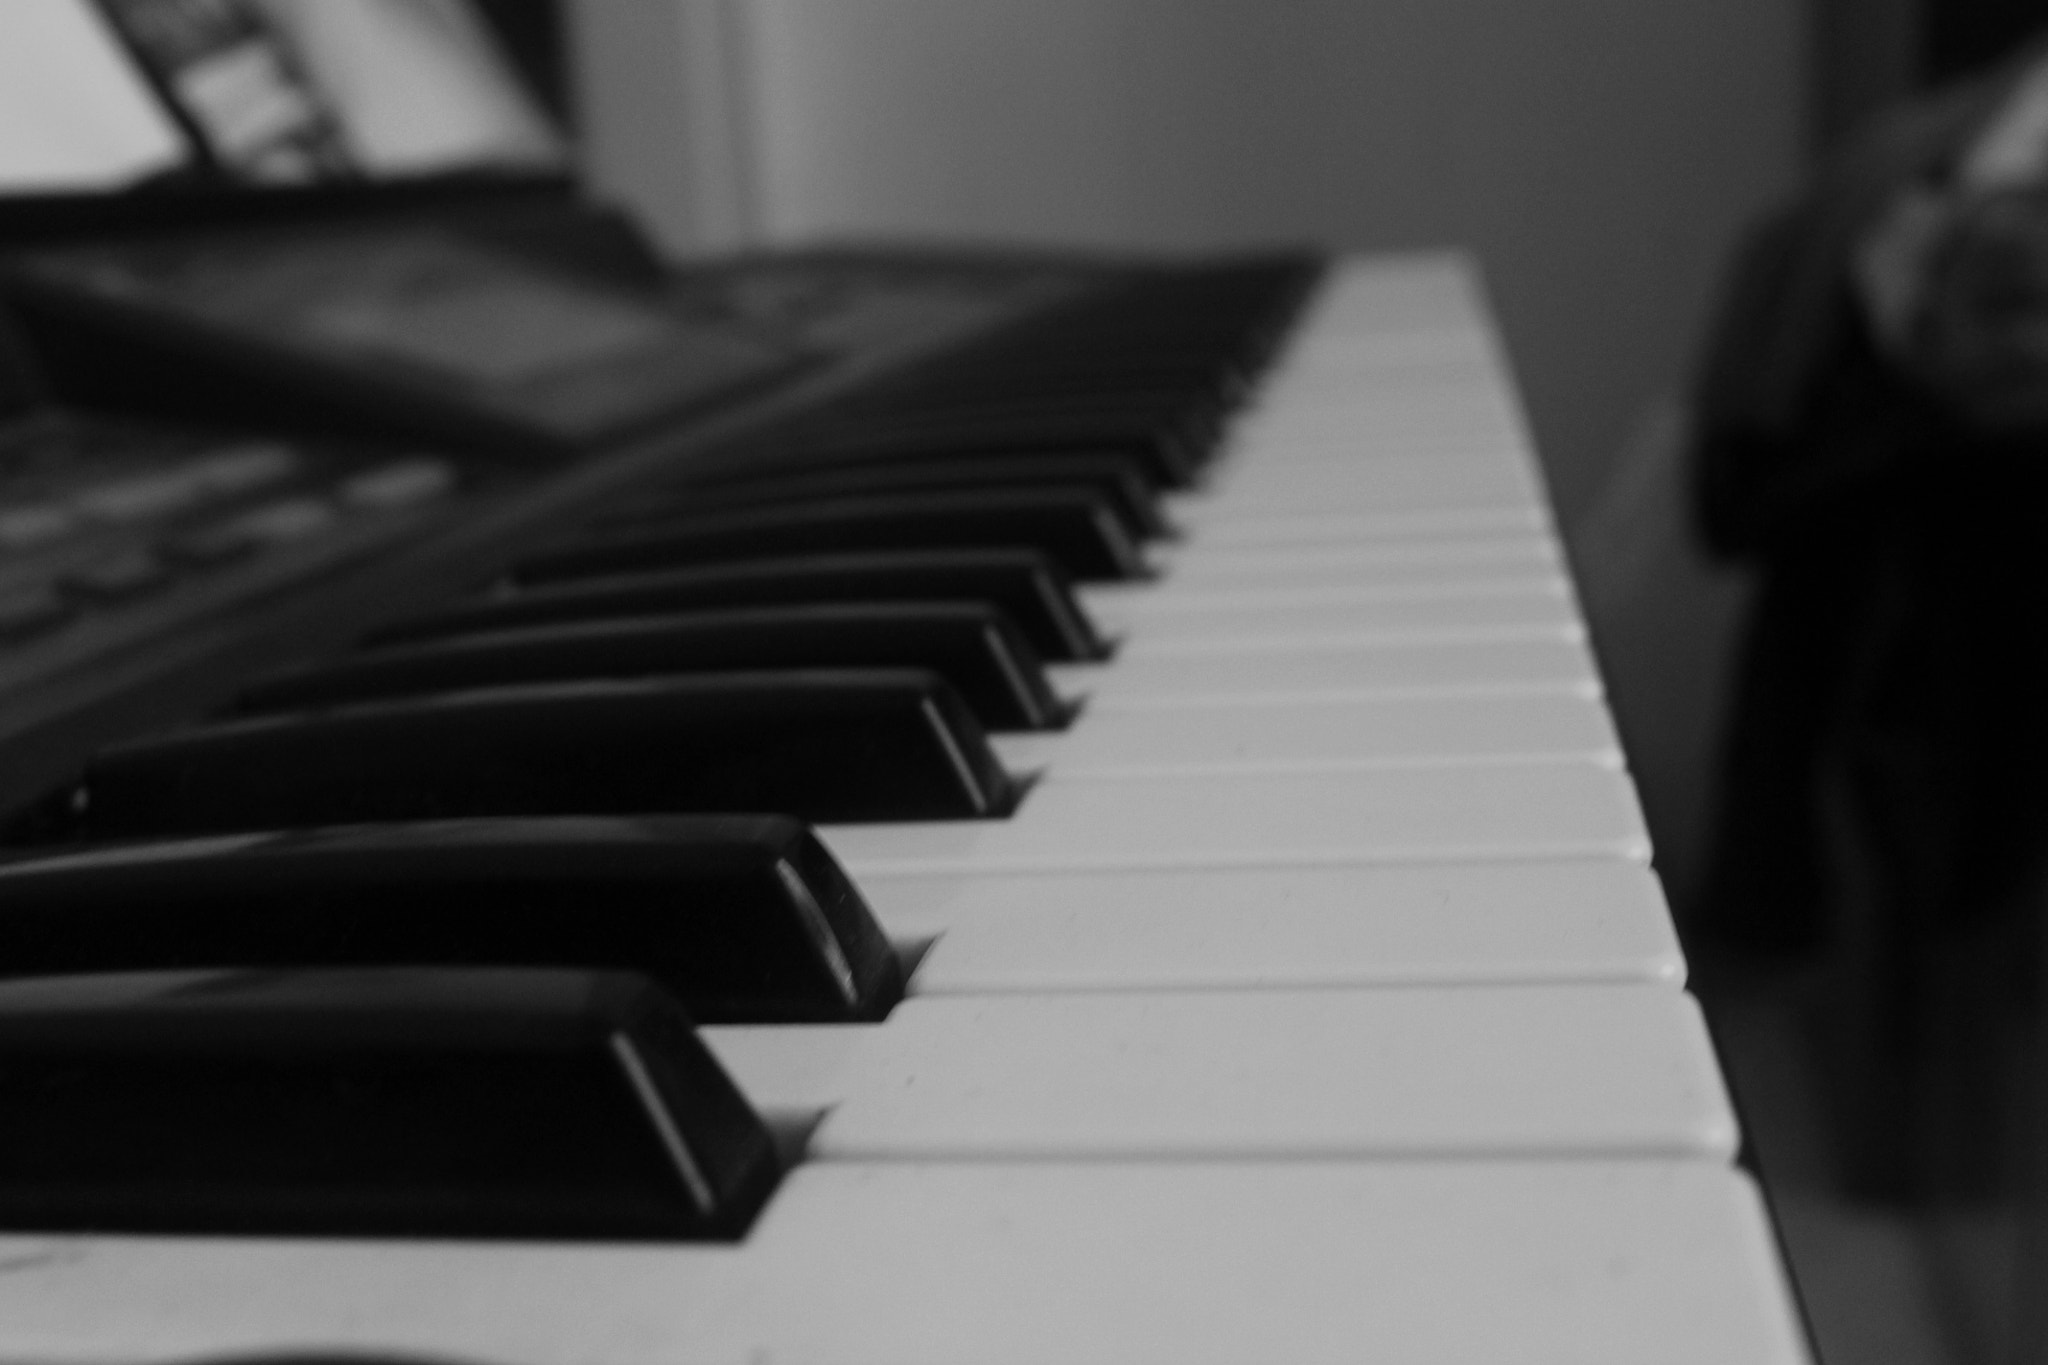 Photograph Keyboard by Sastra Nababan on 500px